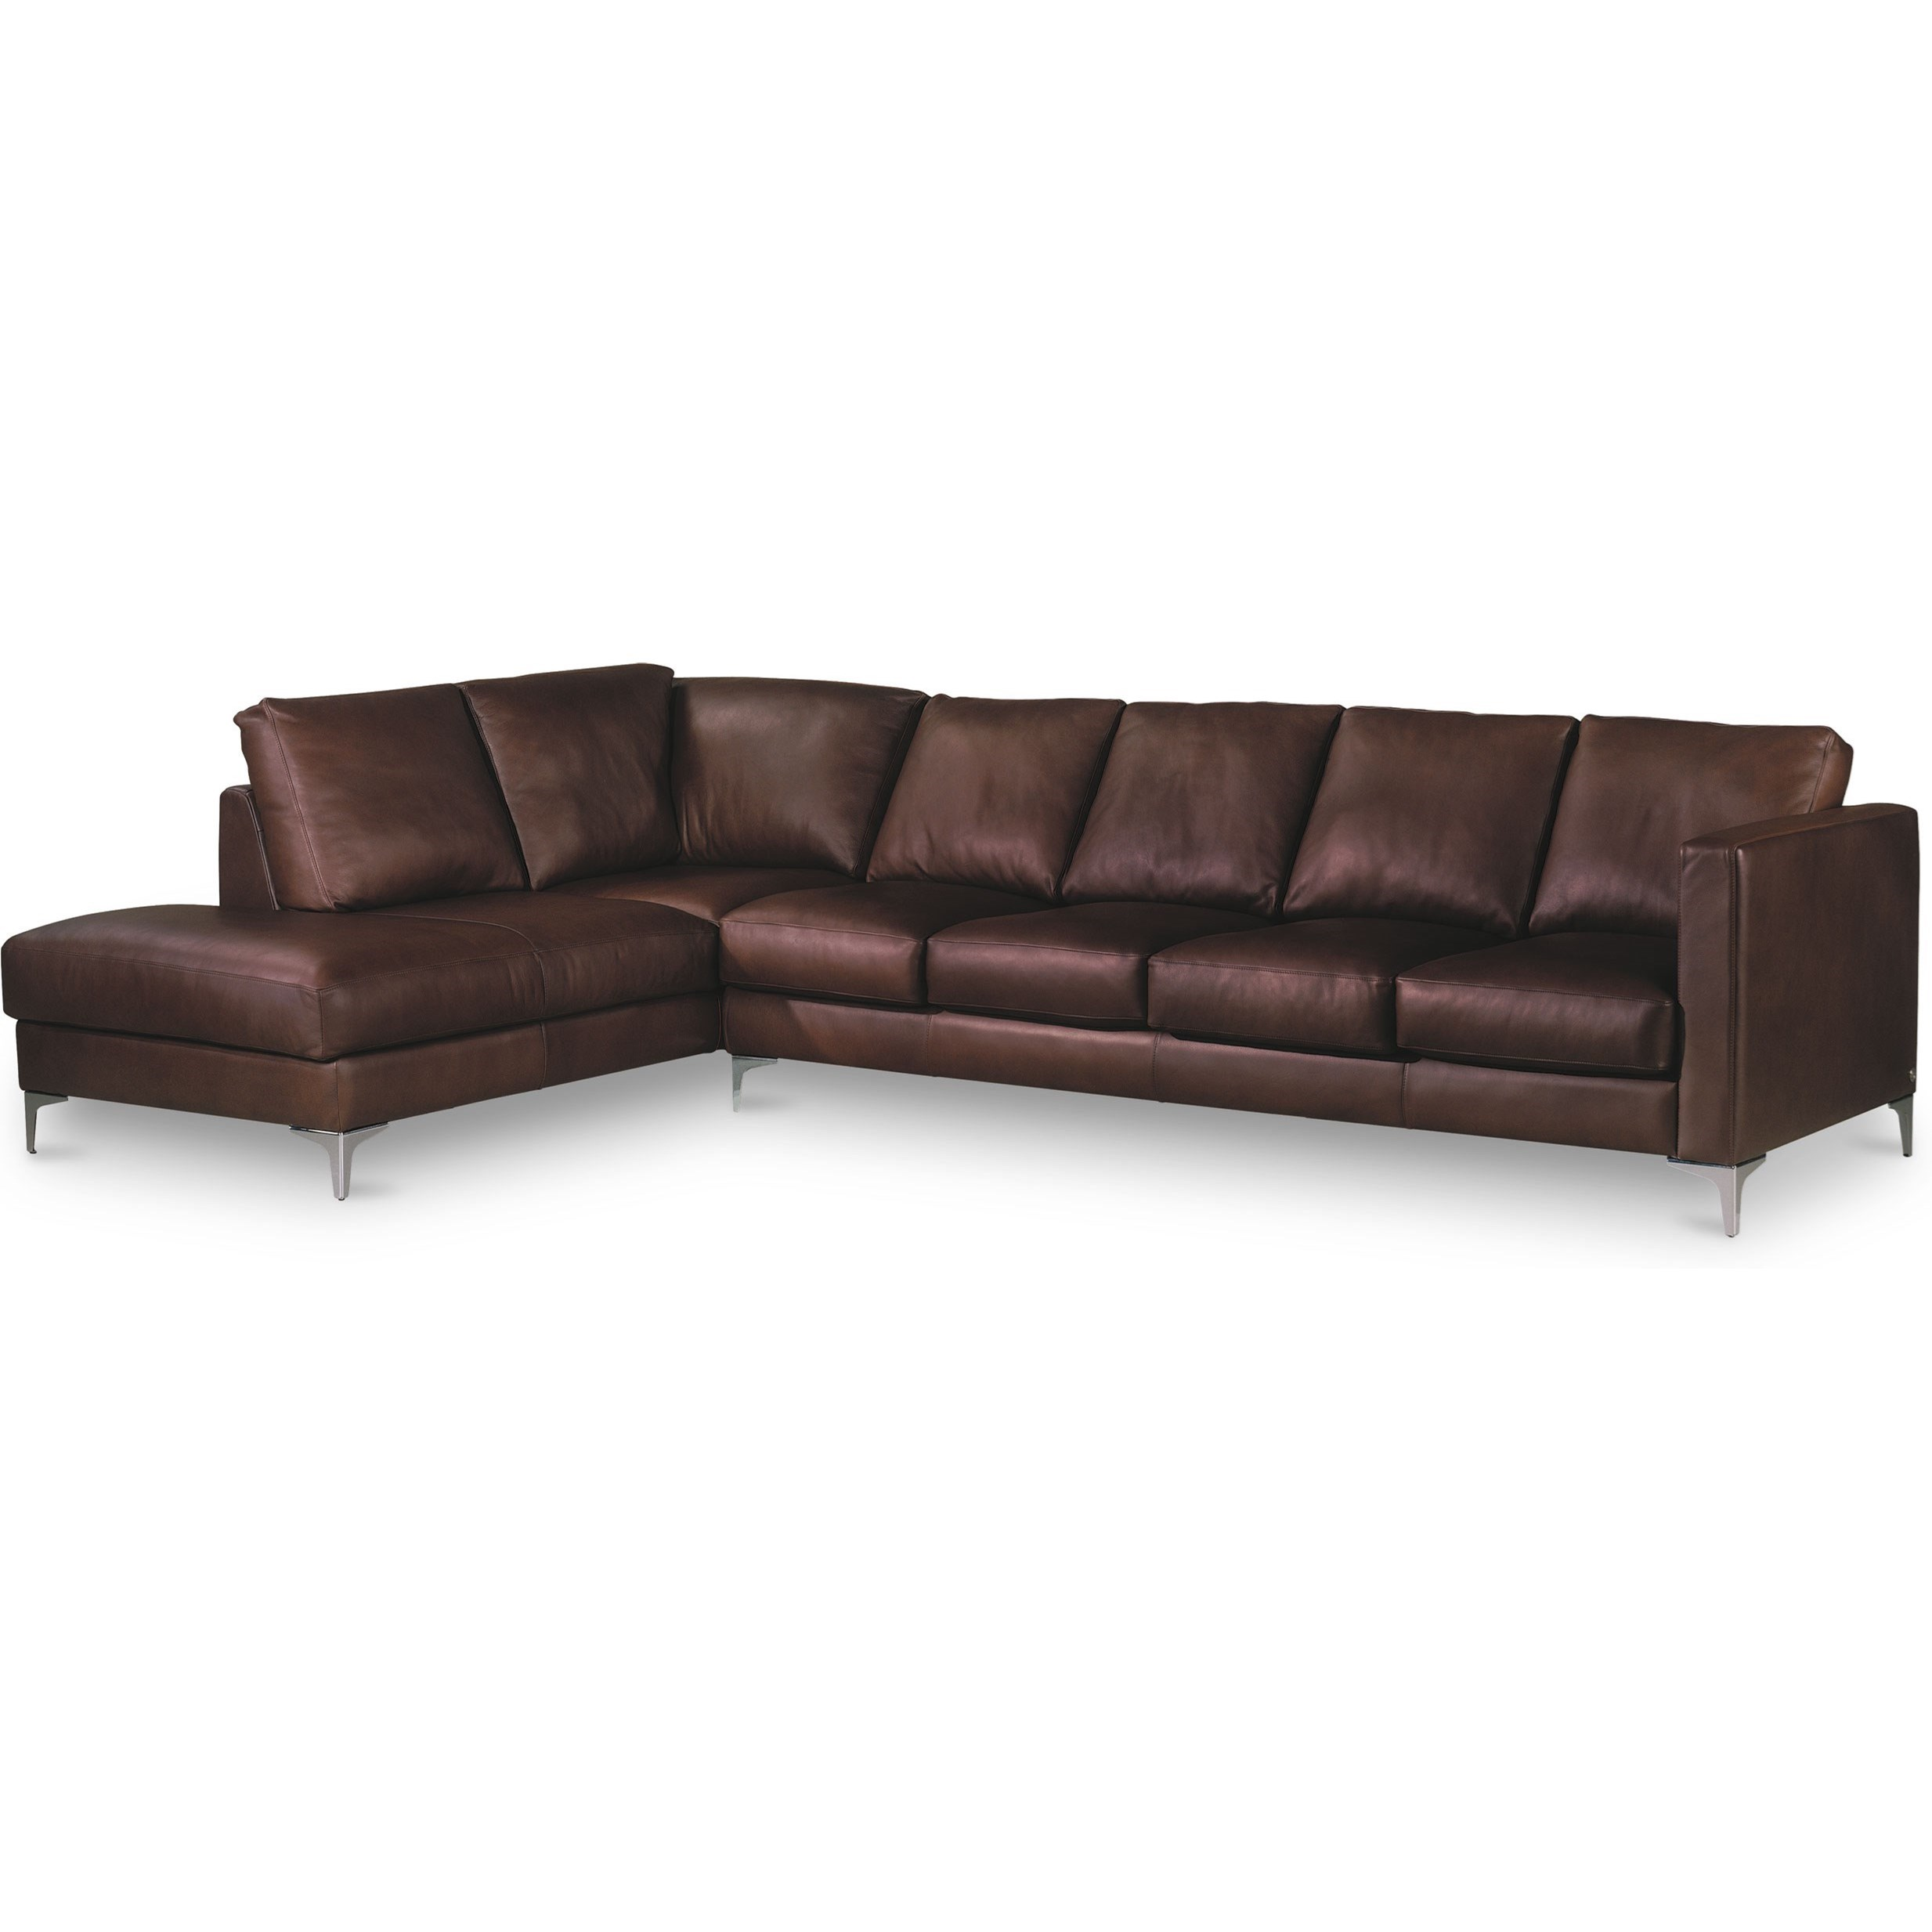 Kendall 5-Seat Sectional w/ Right Arm Sitting Chaise by American Leather at Jacksonville Furniture Mart